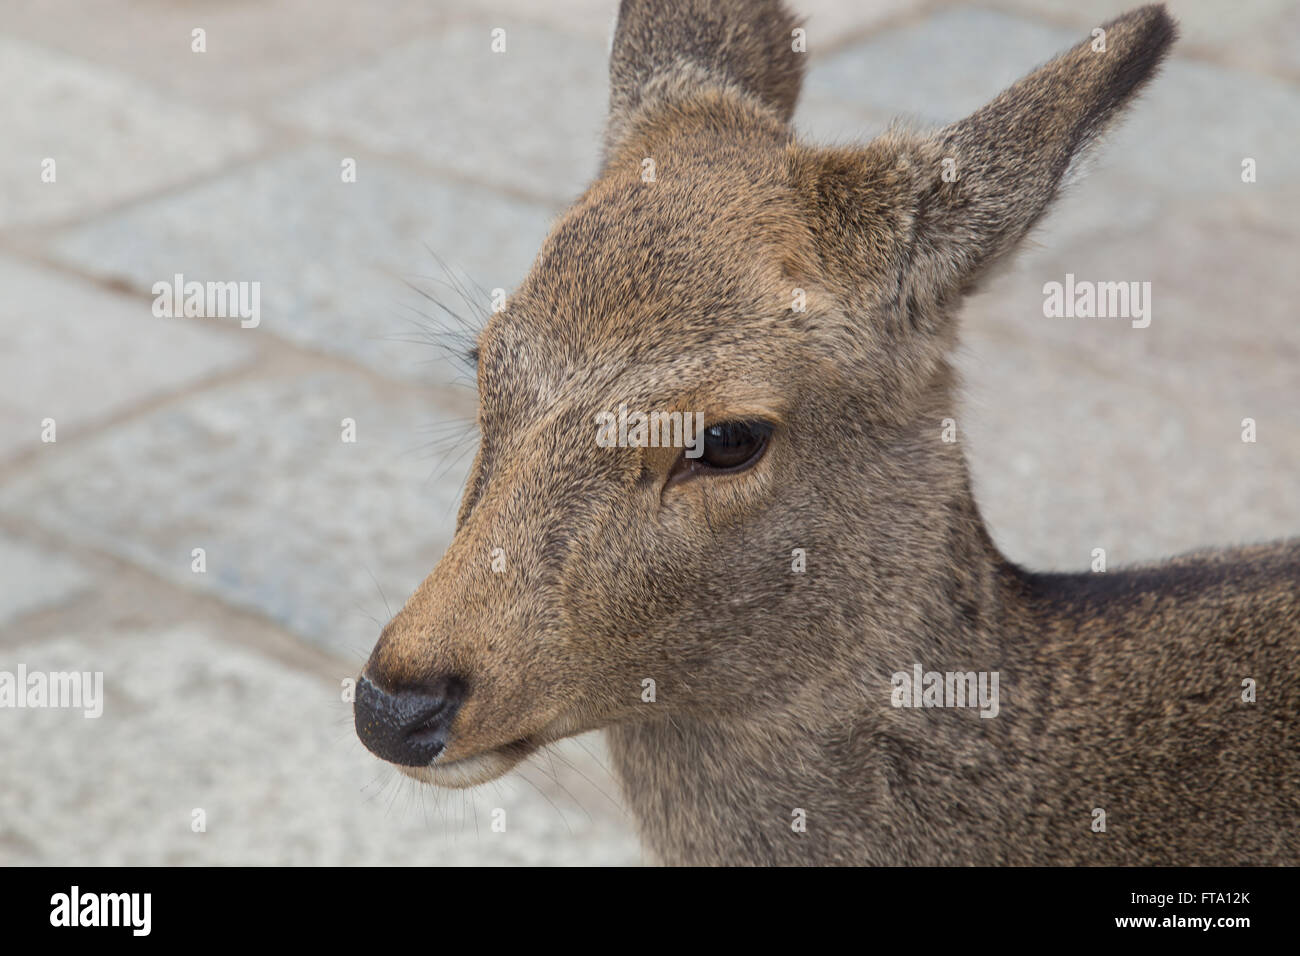 Close-up of tame deer in Nara Park, Japan - Stock Image